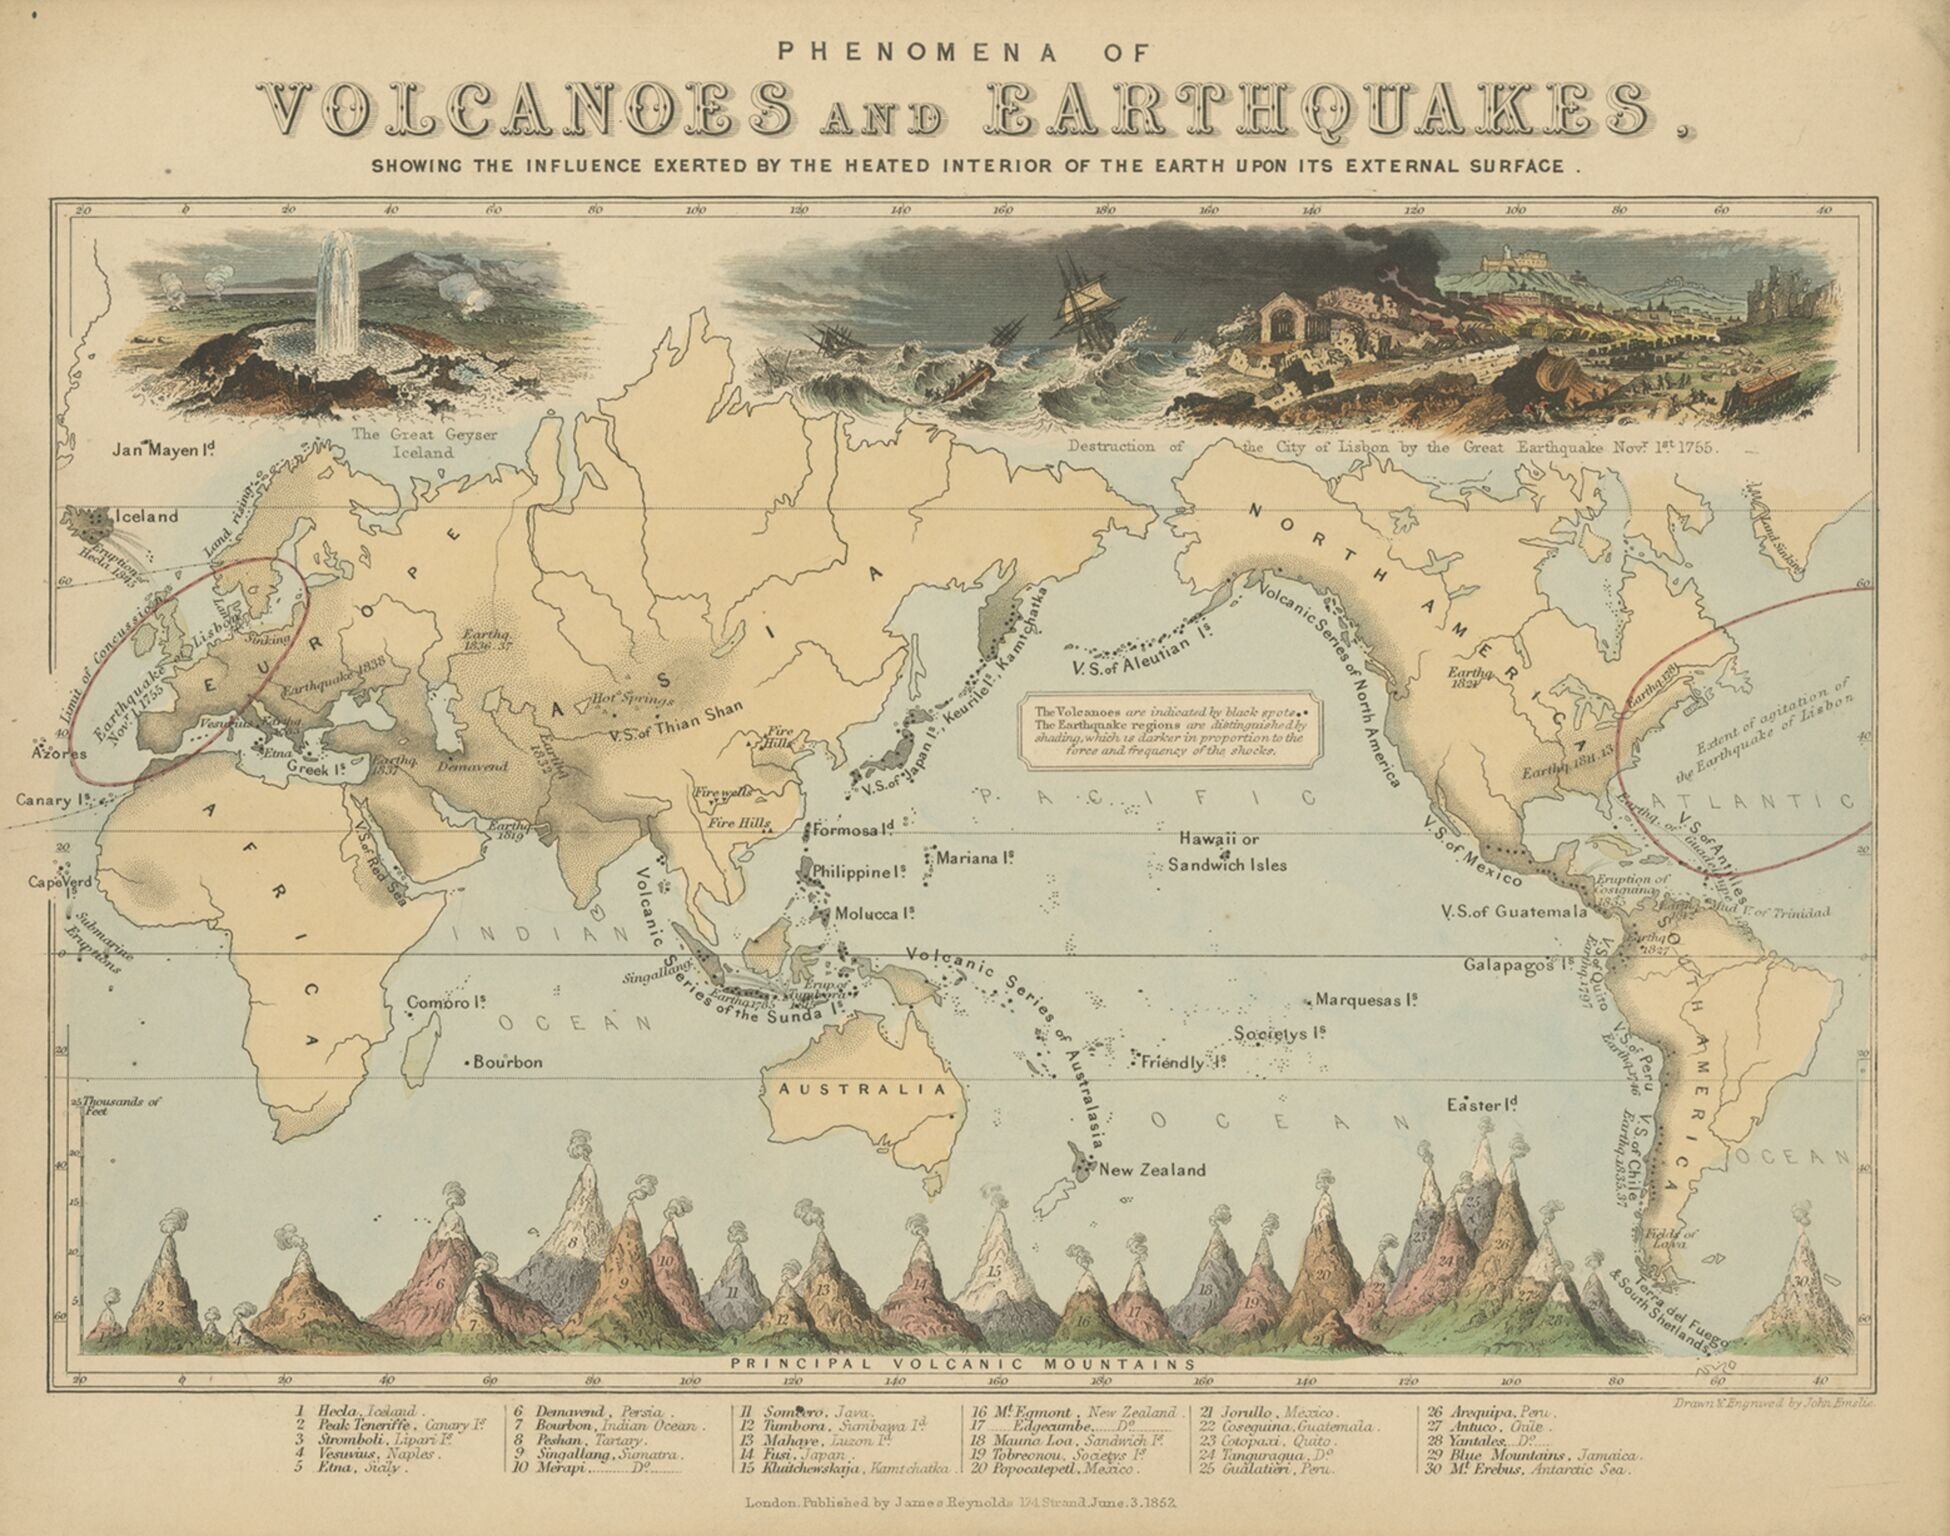 San Fransisco and Volcanos